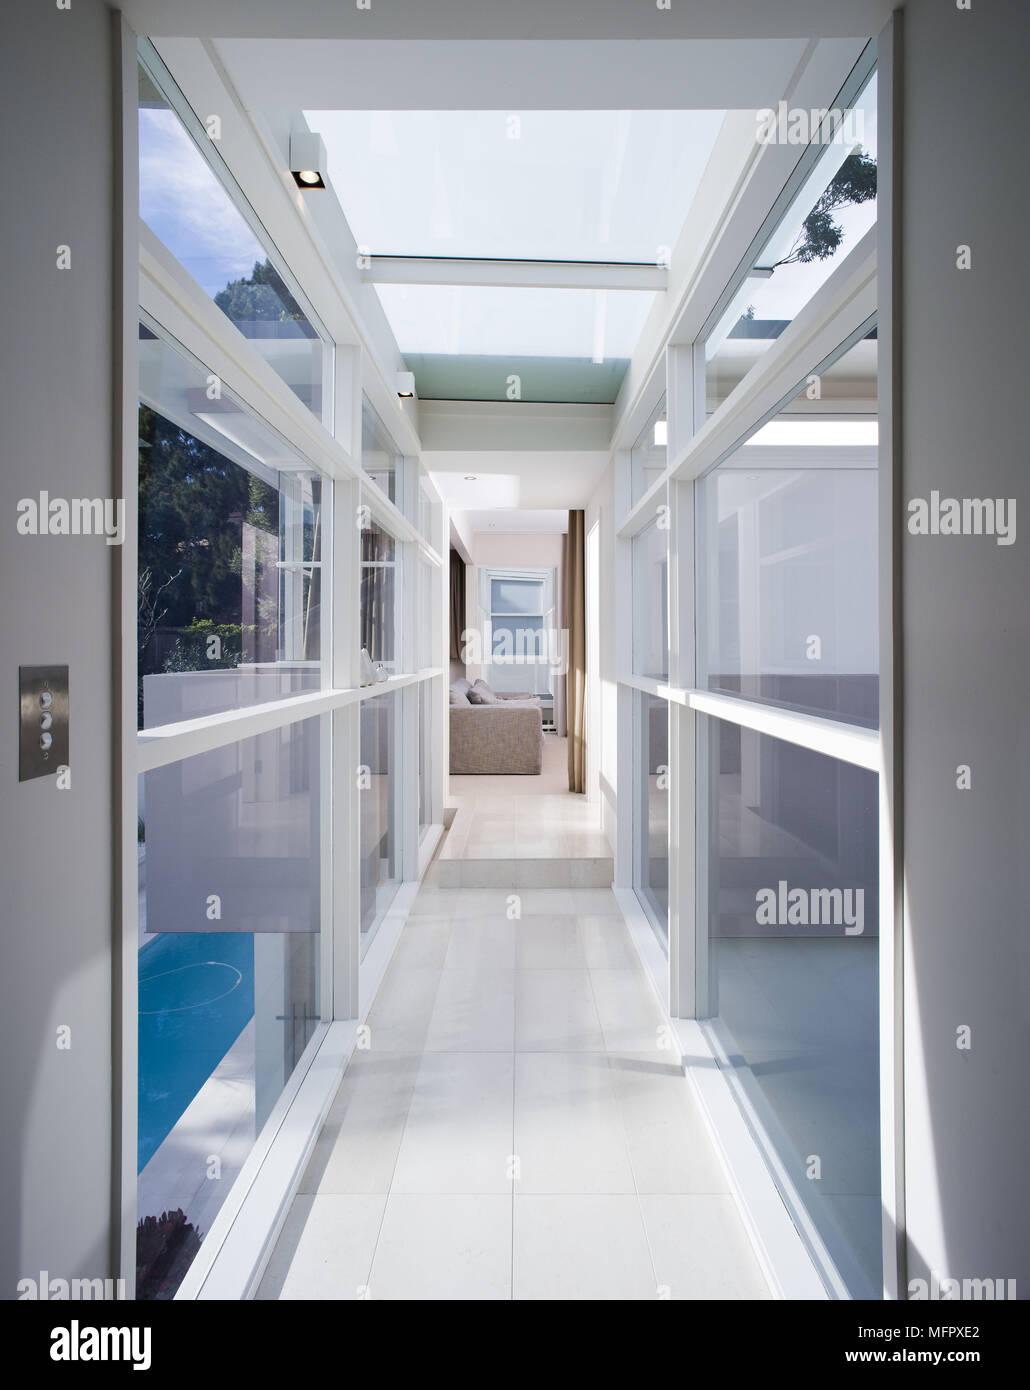 View along hallway of modern house with glass walls and roof